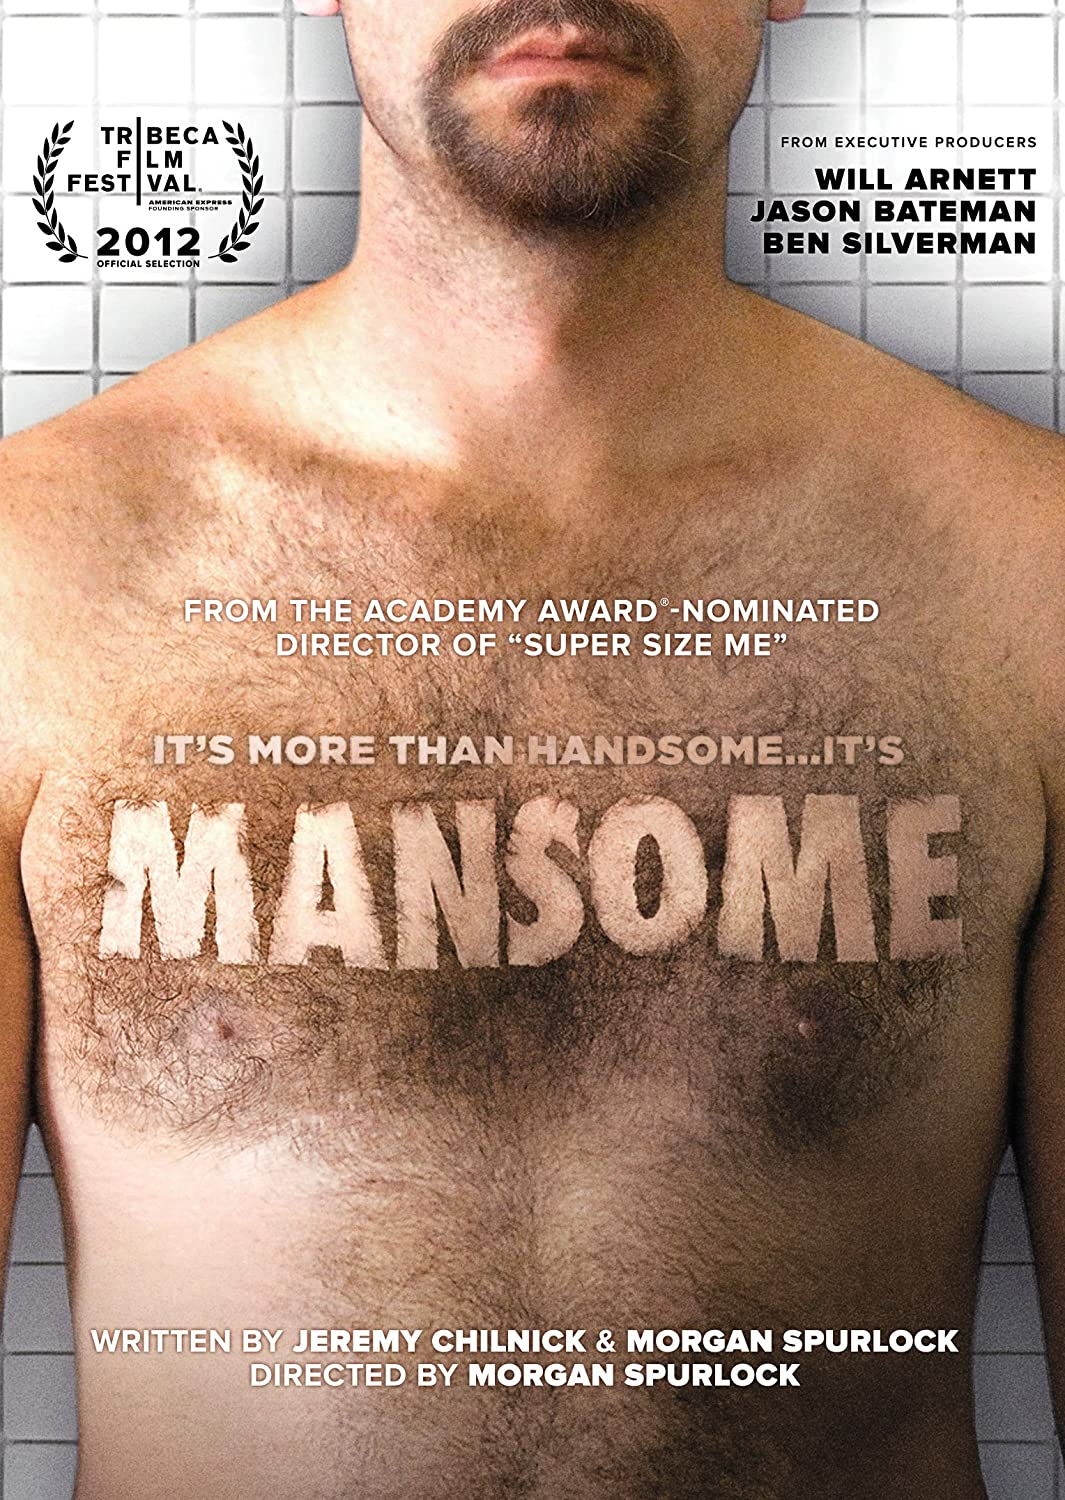 Mansome, one of the haircut movies